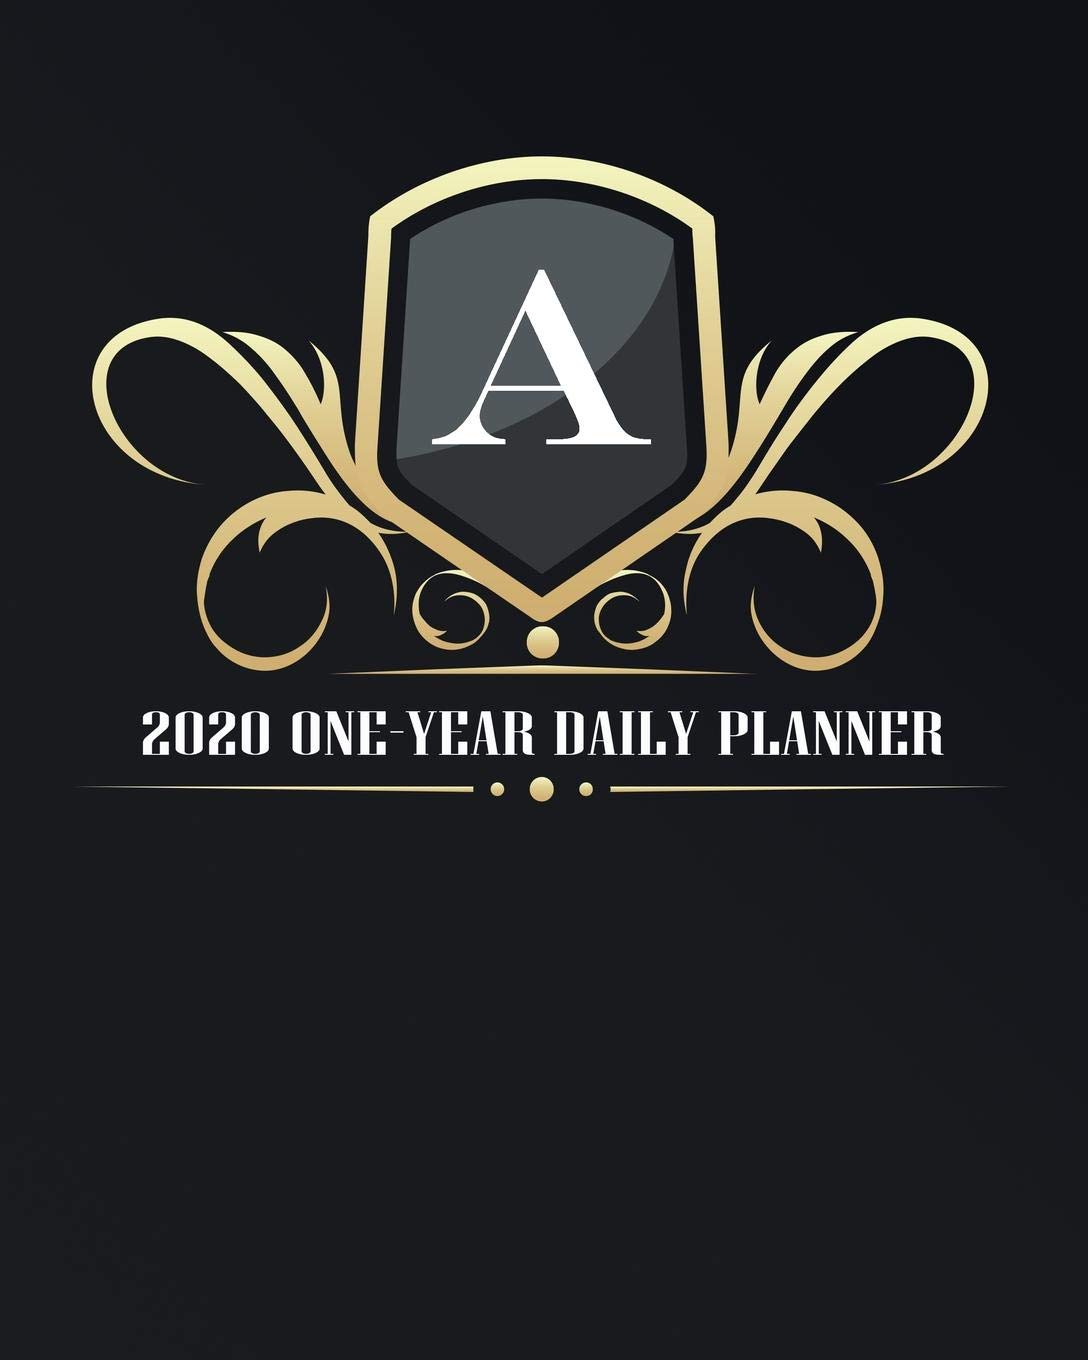 A - 2020 One Year Daily Planner: Elegant Black and Gold ...